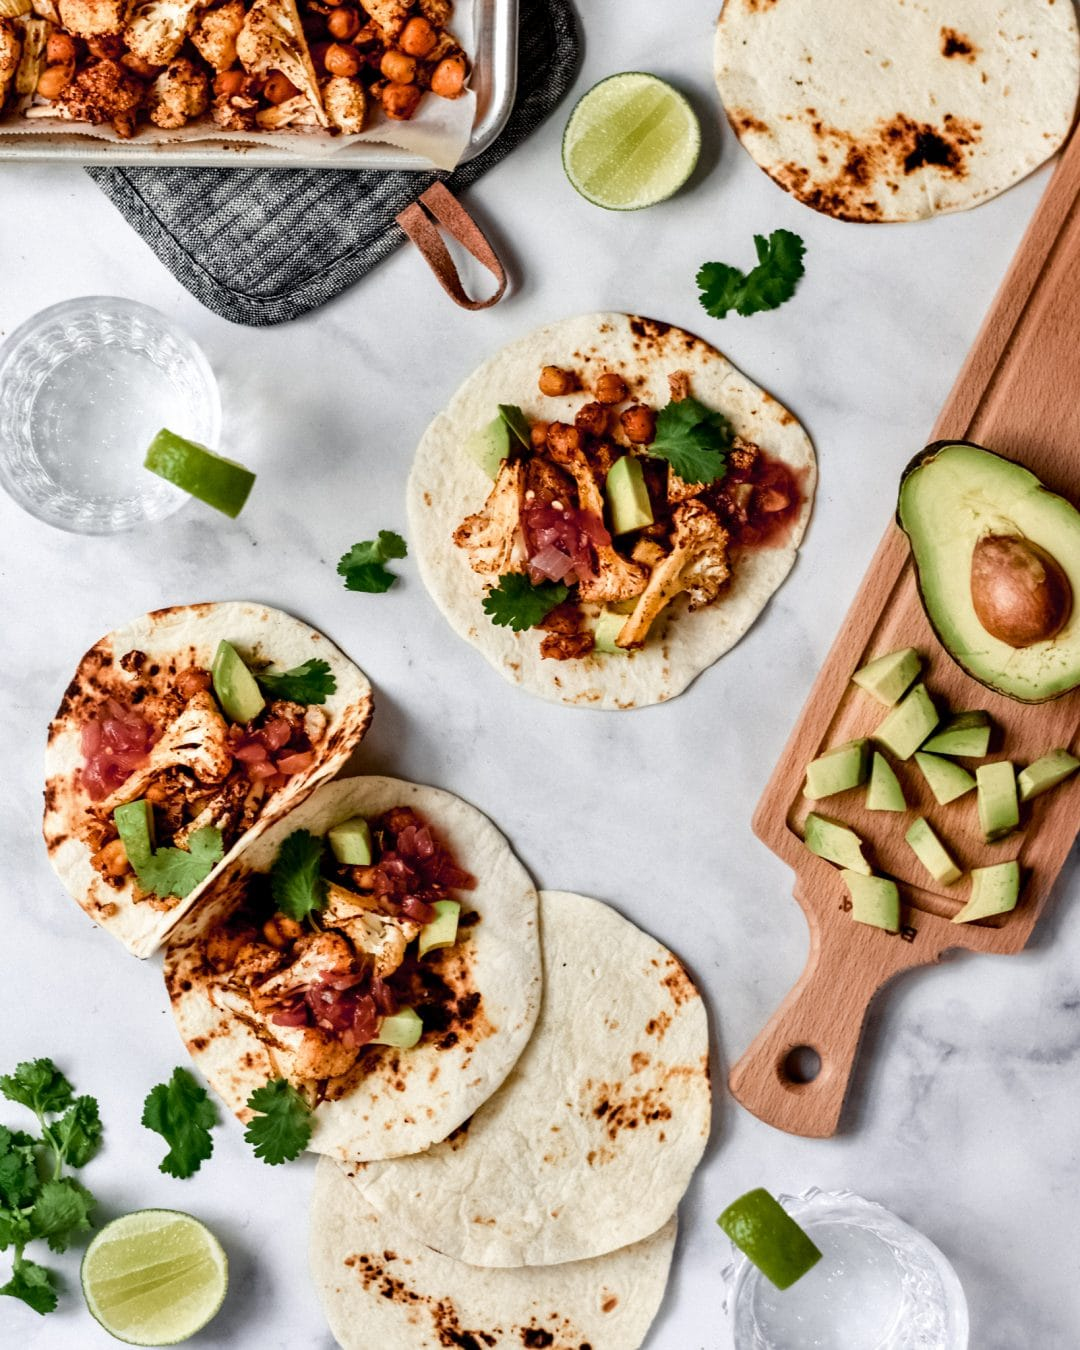 3 roasted cauliflower and chickpea tacos with avocado and a glass of seltzer